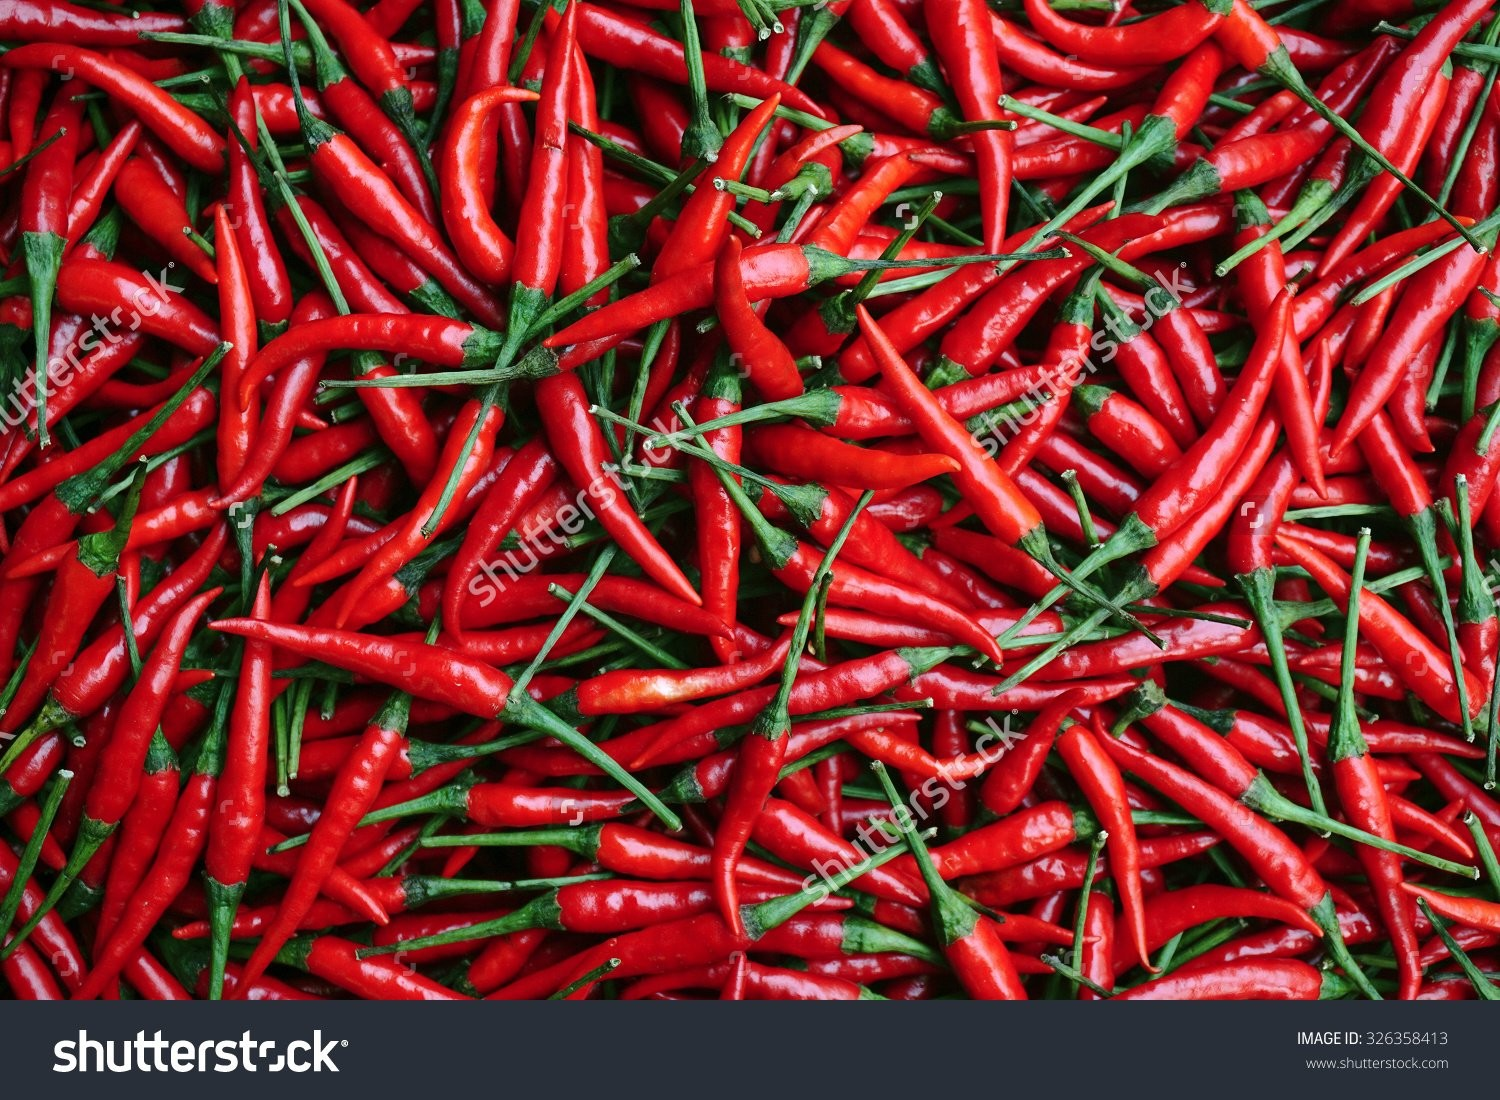 stock-photo-red-chillies-background-selective-focus-326358413